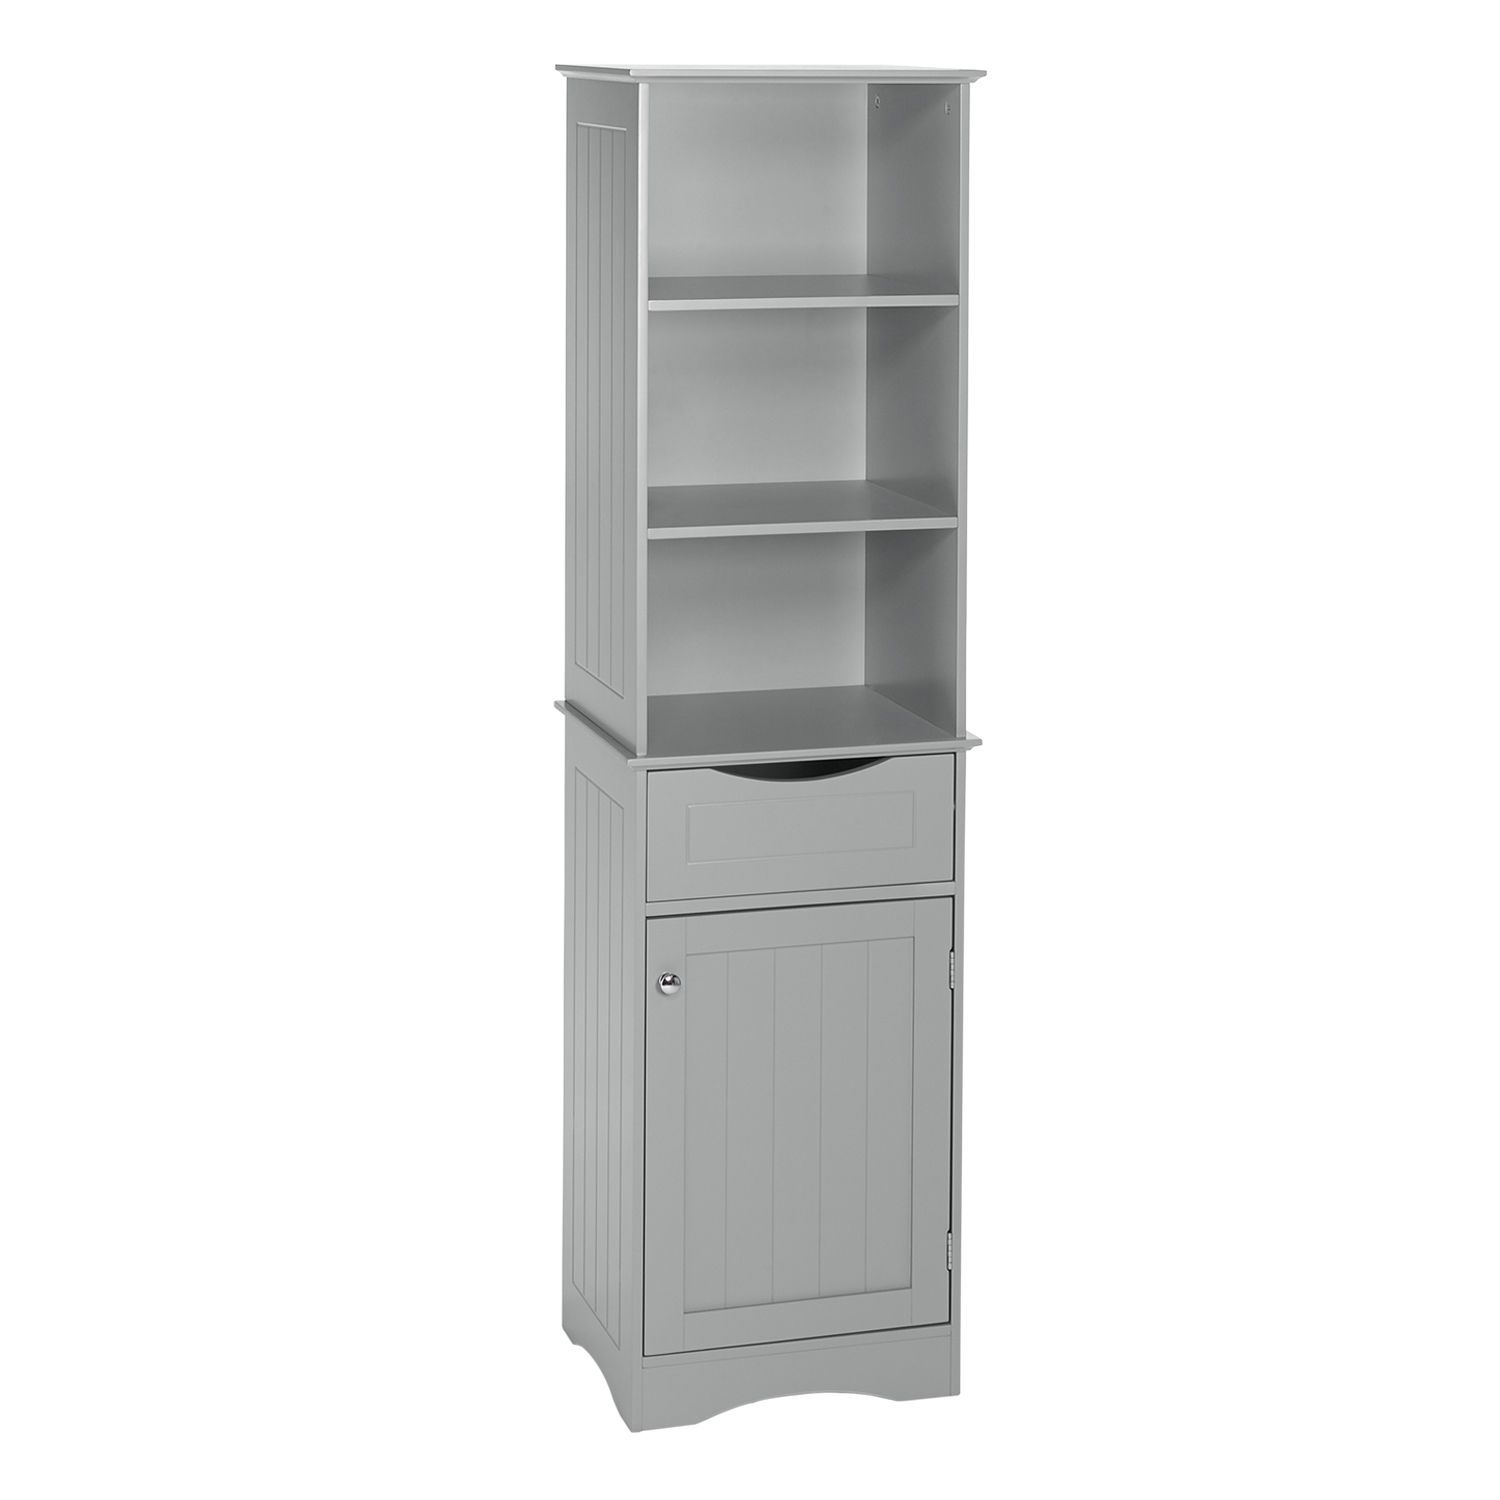 RiverRidge Ashland Collection Tall Cabinet (White) | Products